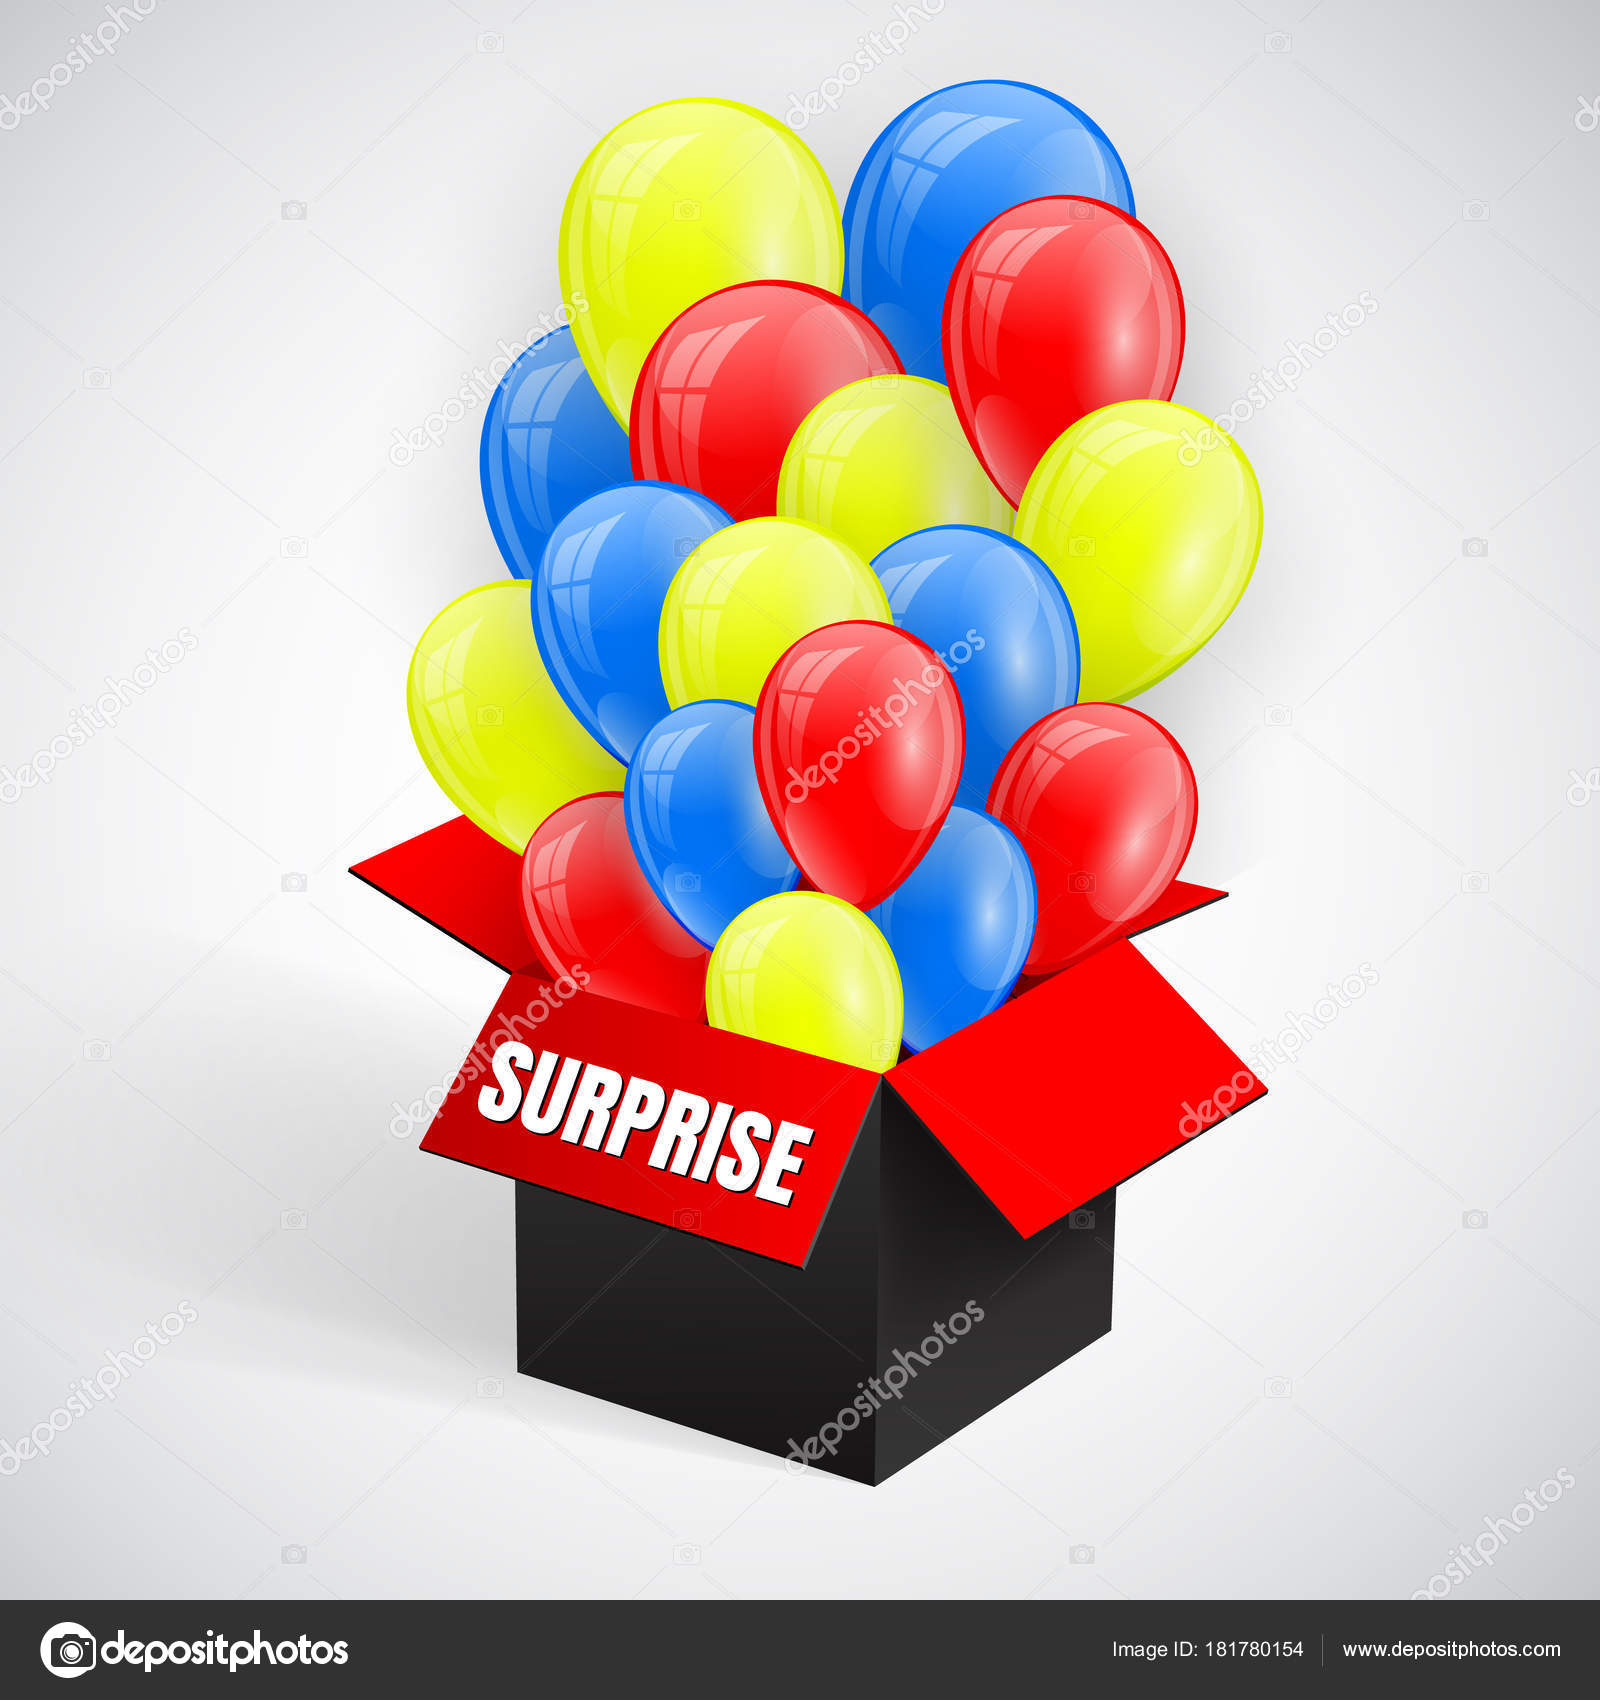 Surprise Poster With Balloons Bunch Flying From Open Red Box Vector